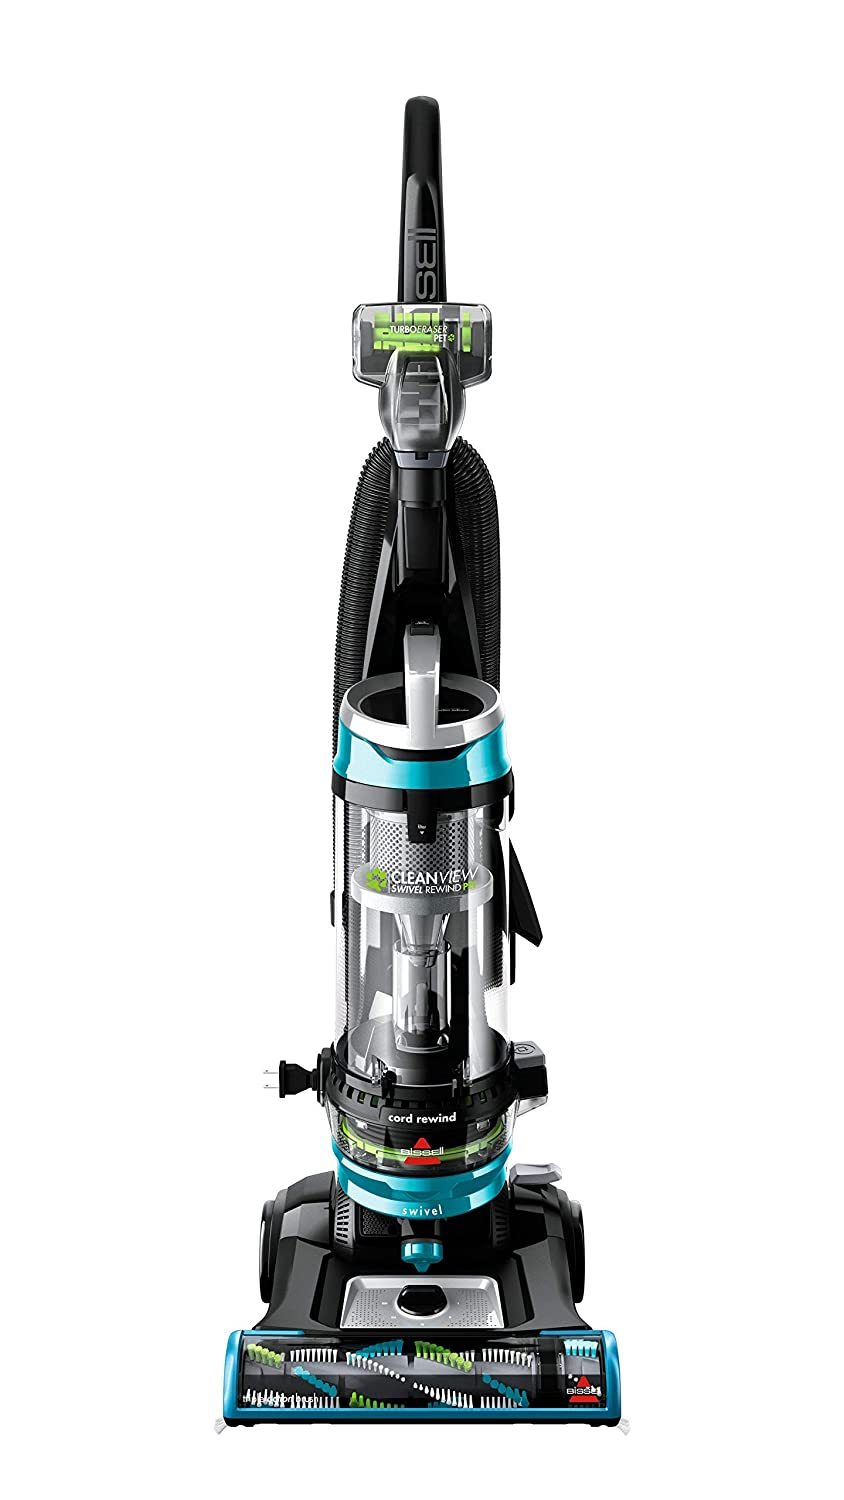 BISSELL Cleanview Swivel Rewind Pet Upright Bagless Vacuum Cleaner (Renewed)